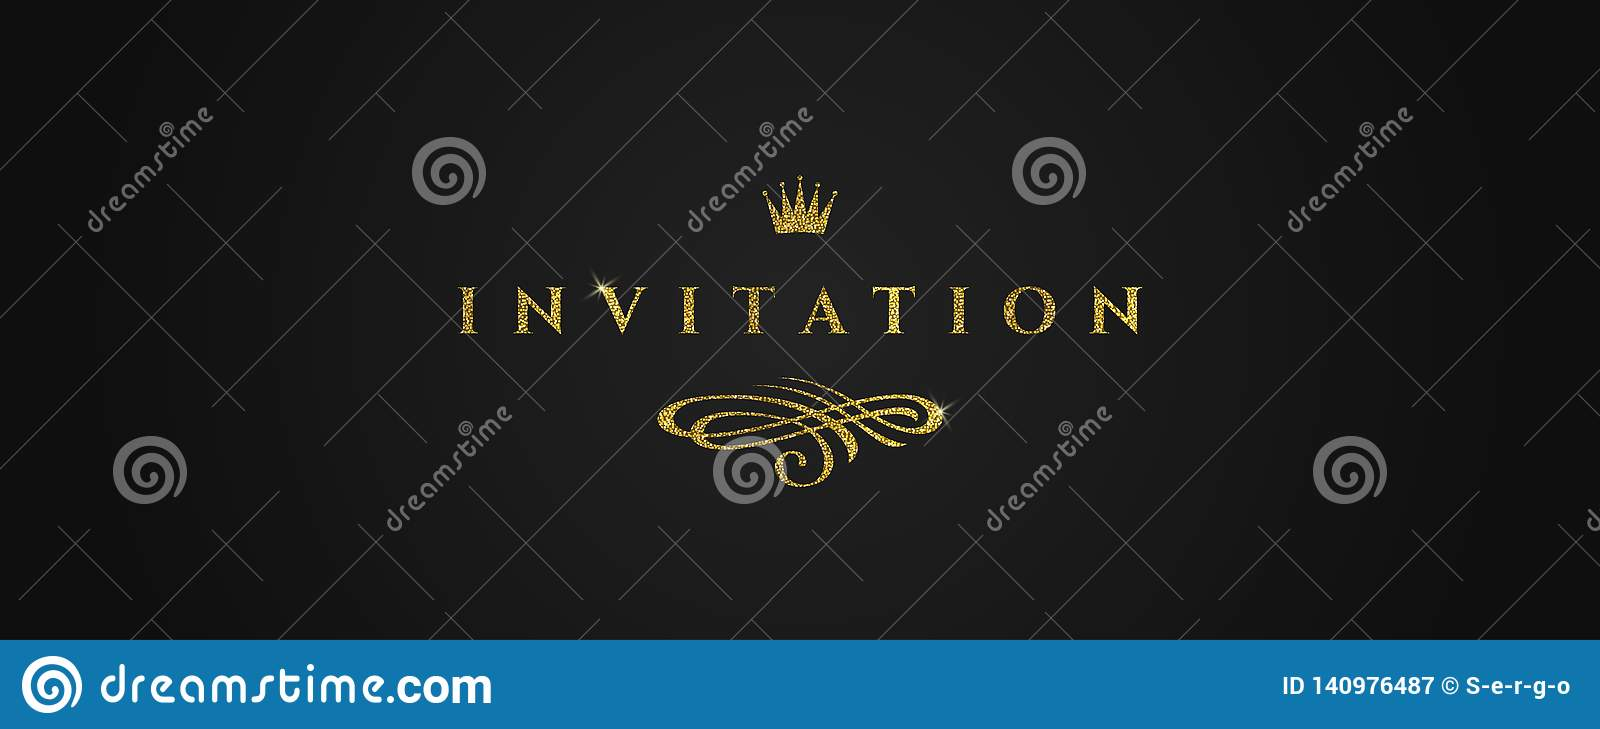 Template invitation with glitter gold flourishes elements and crown